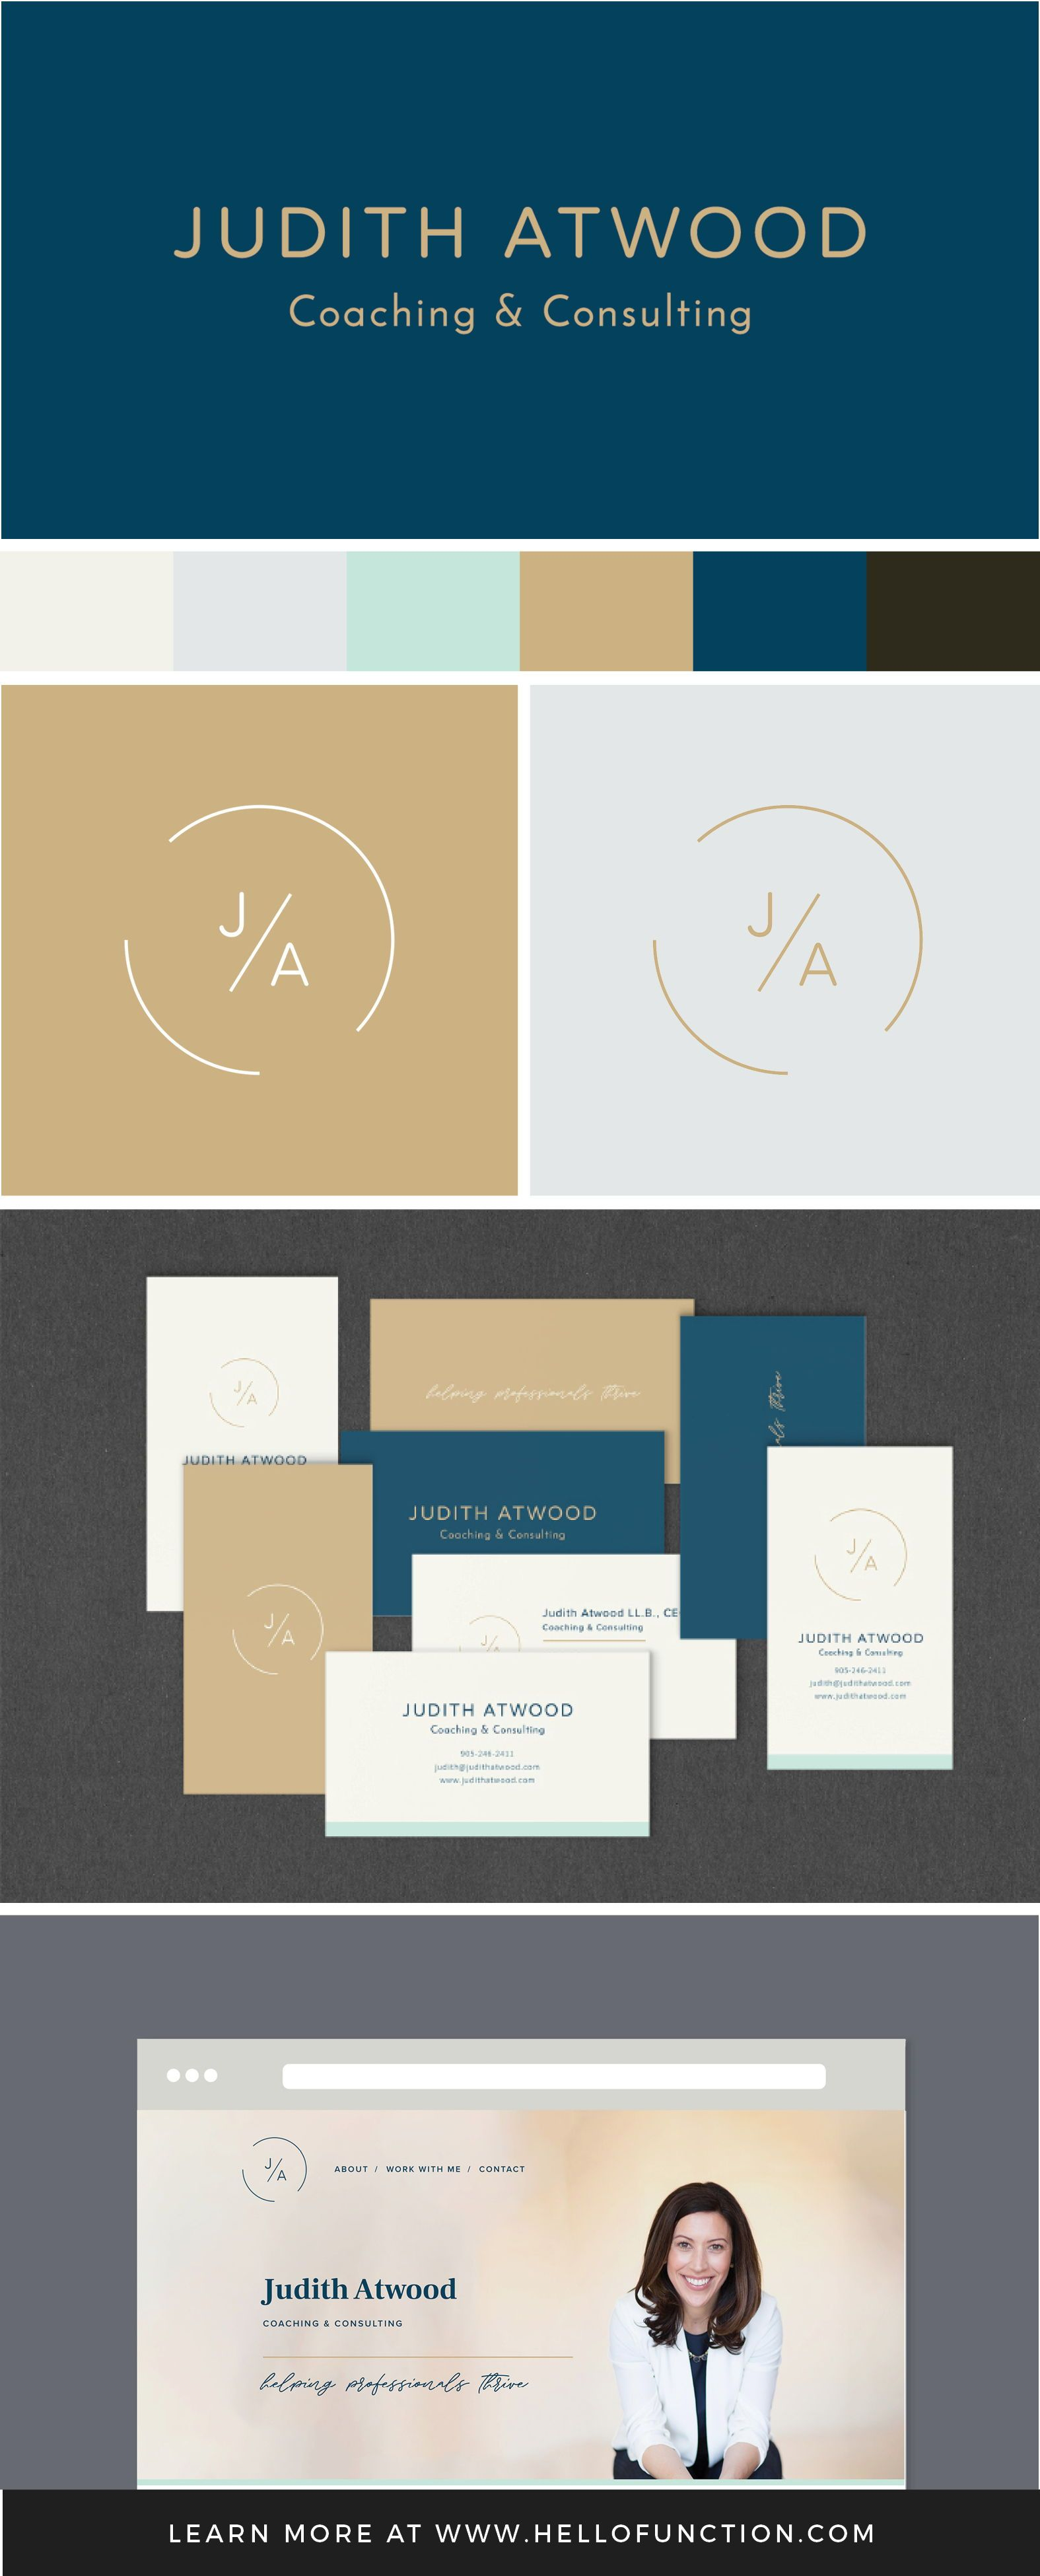 Judith Atwood coaching and counseling brand identity by